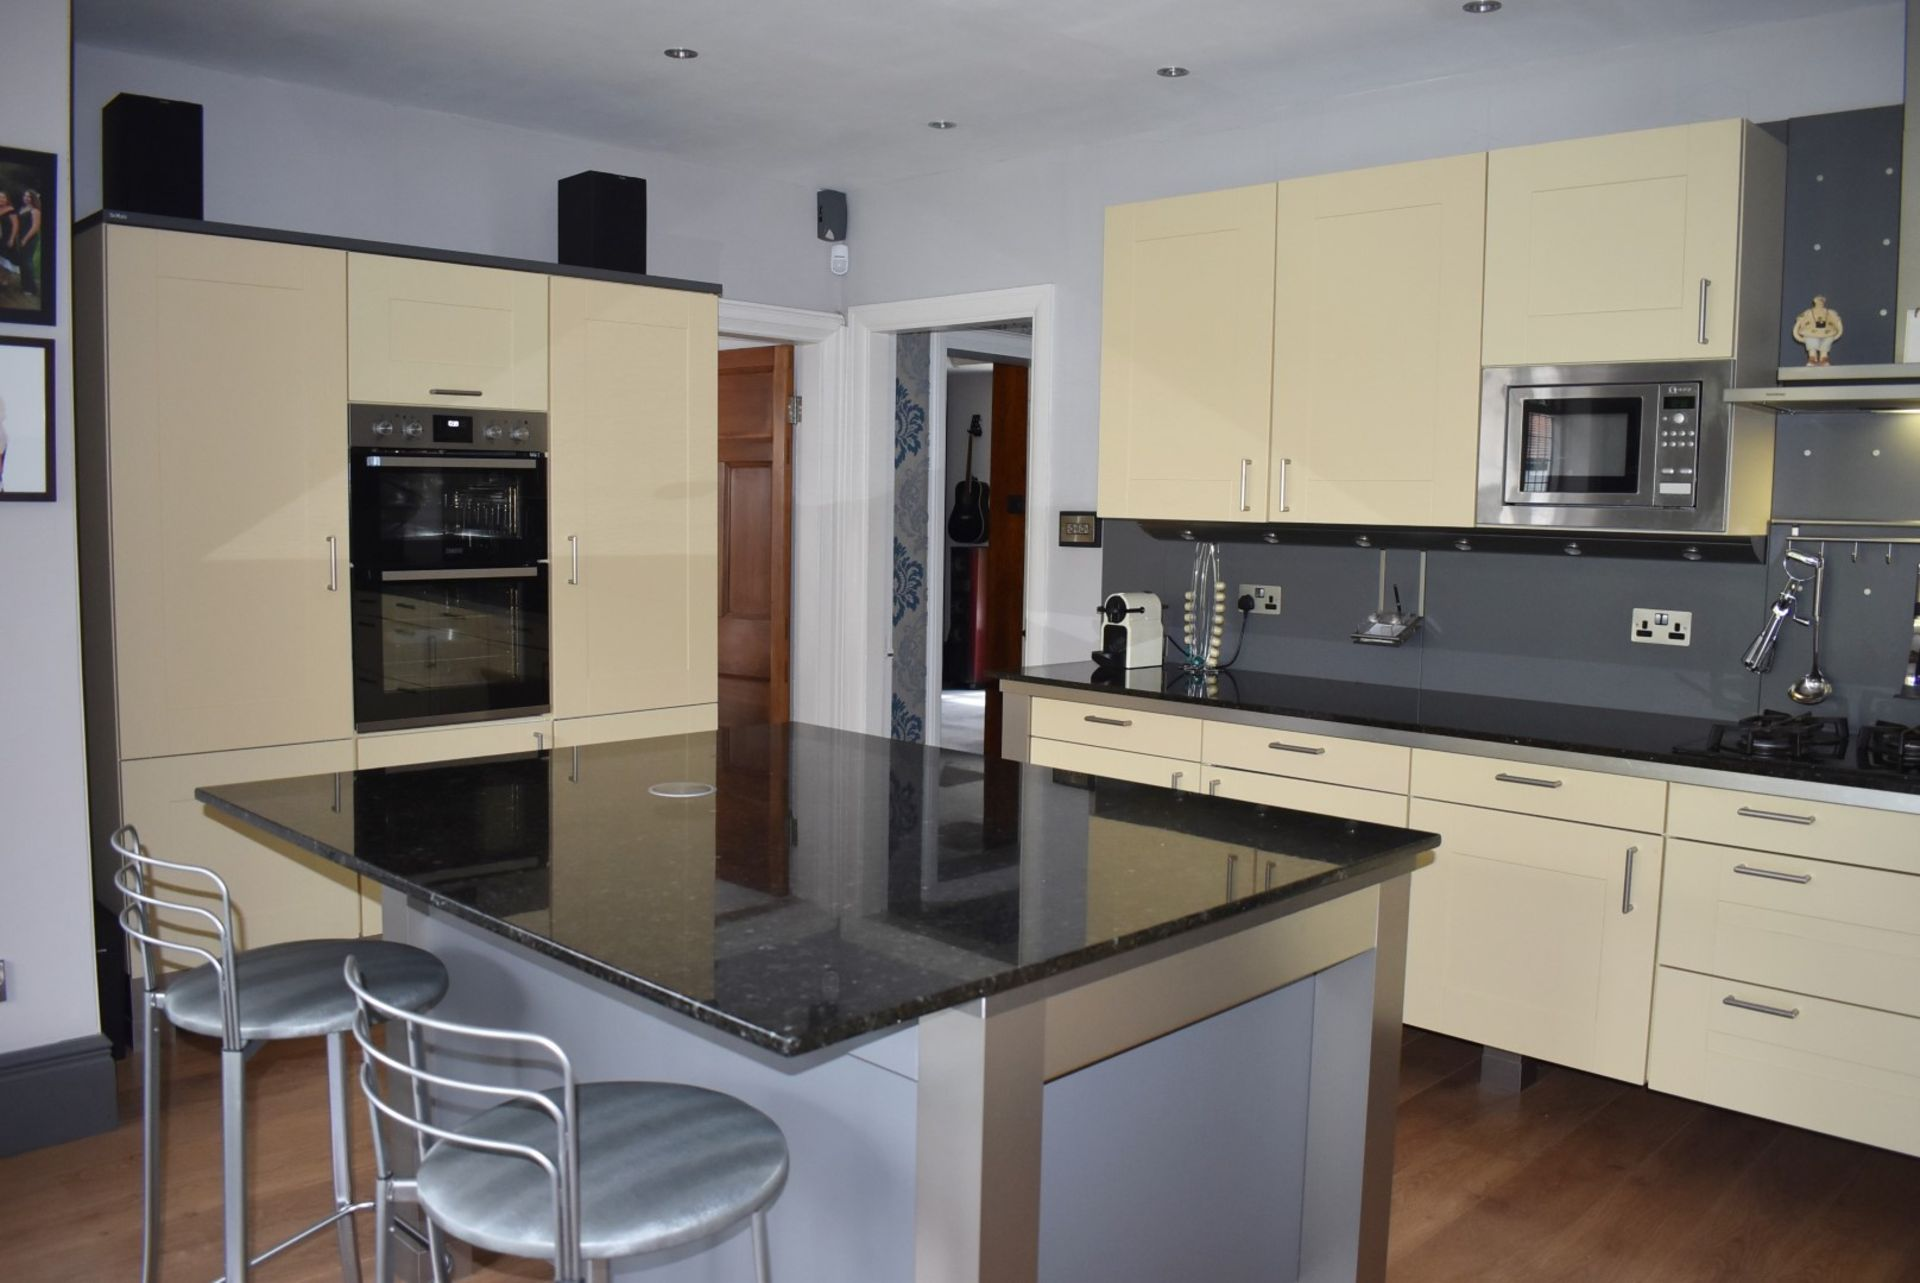 1 x SieMatic Contemporary Fitted Kitchen With Appliances - Features Shaker Style Doors, Central - Image 33 of 96